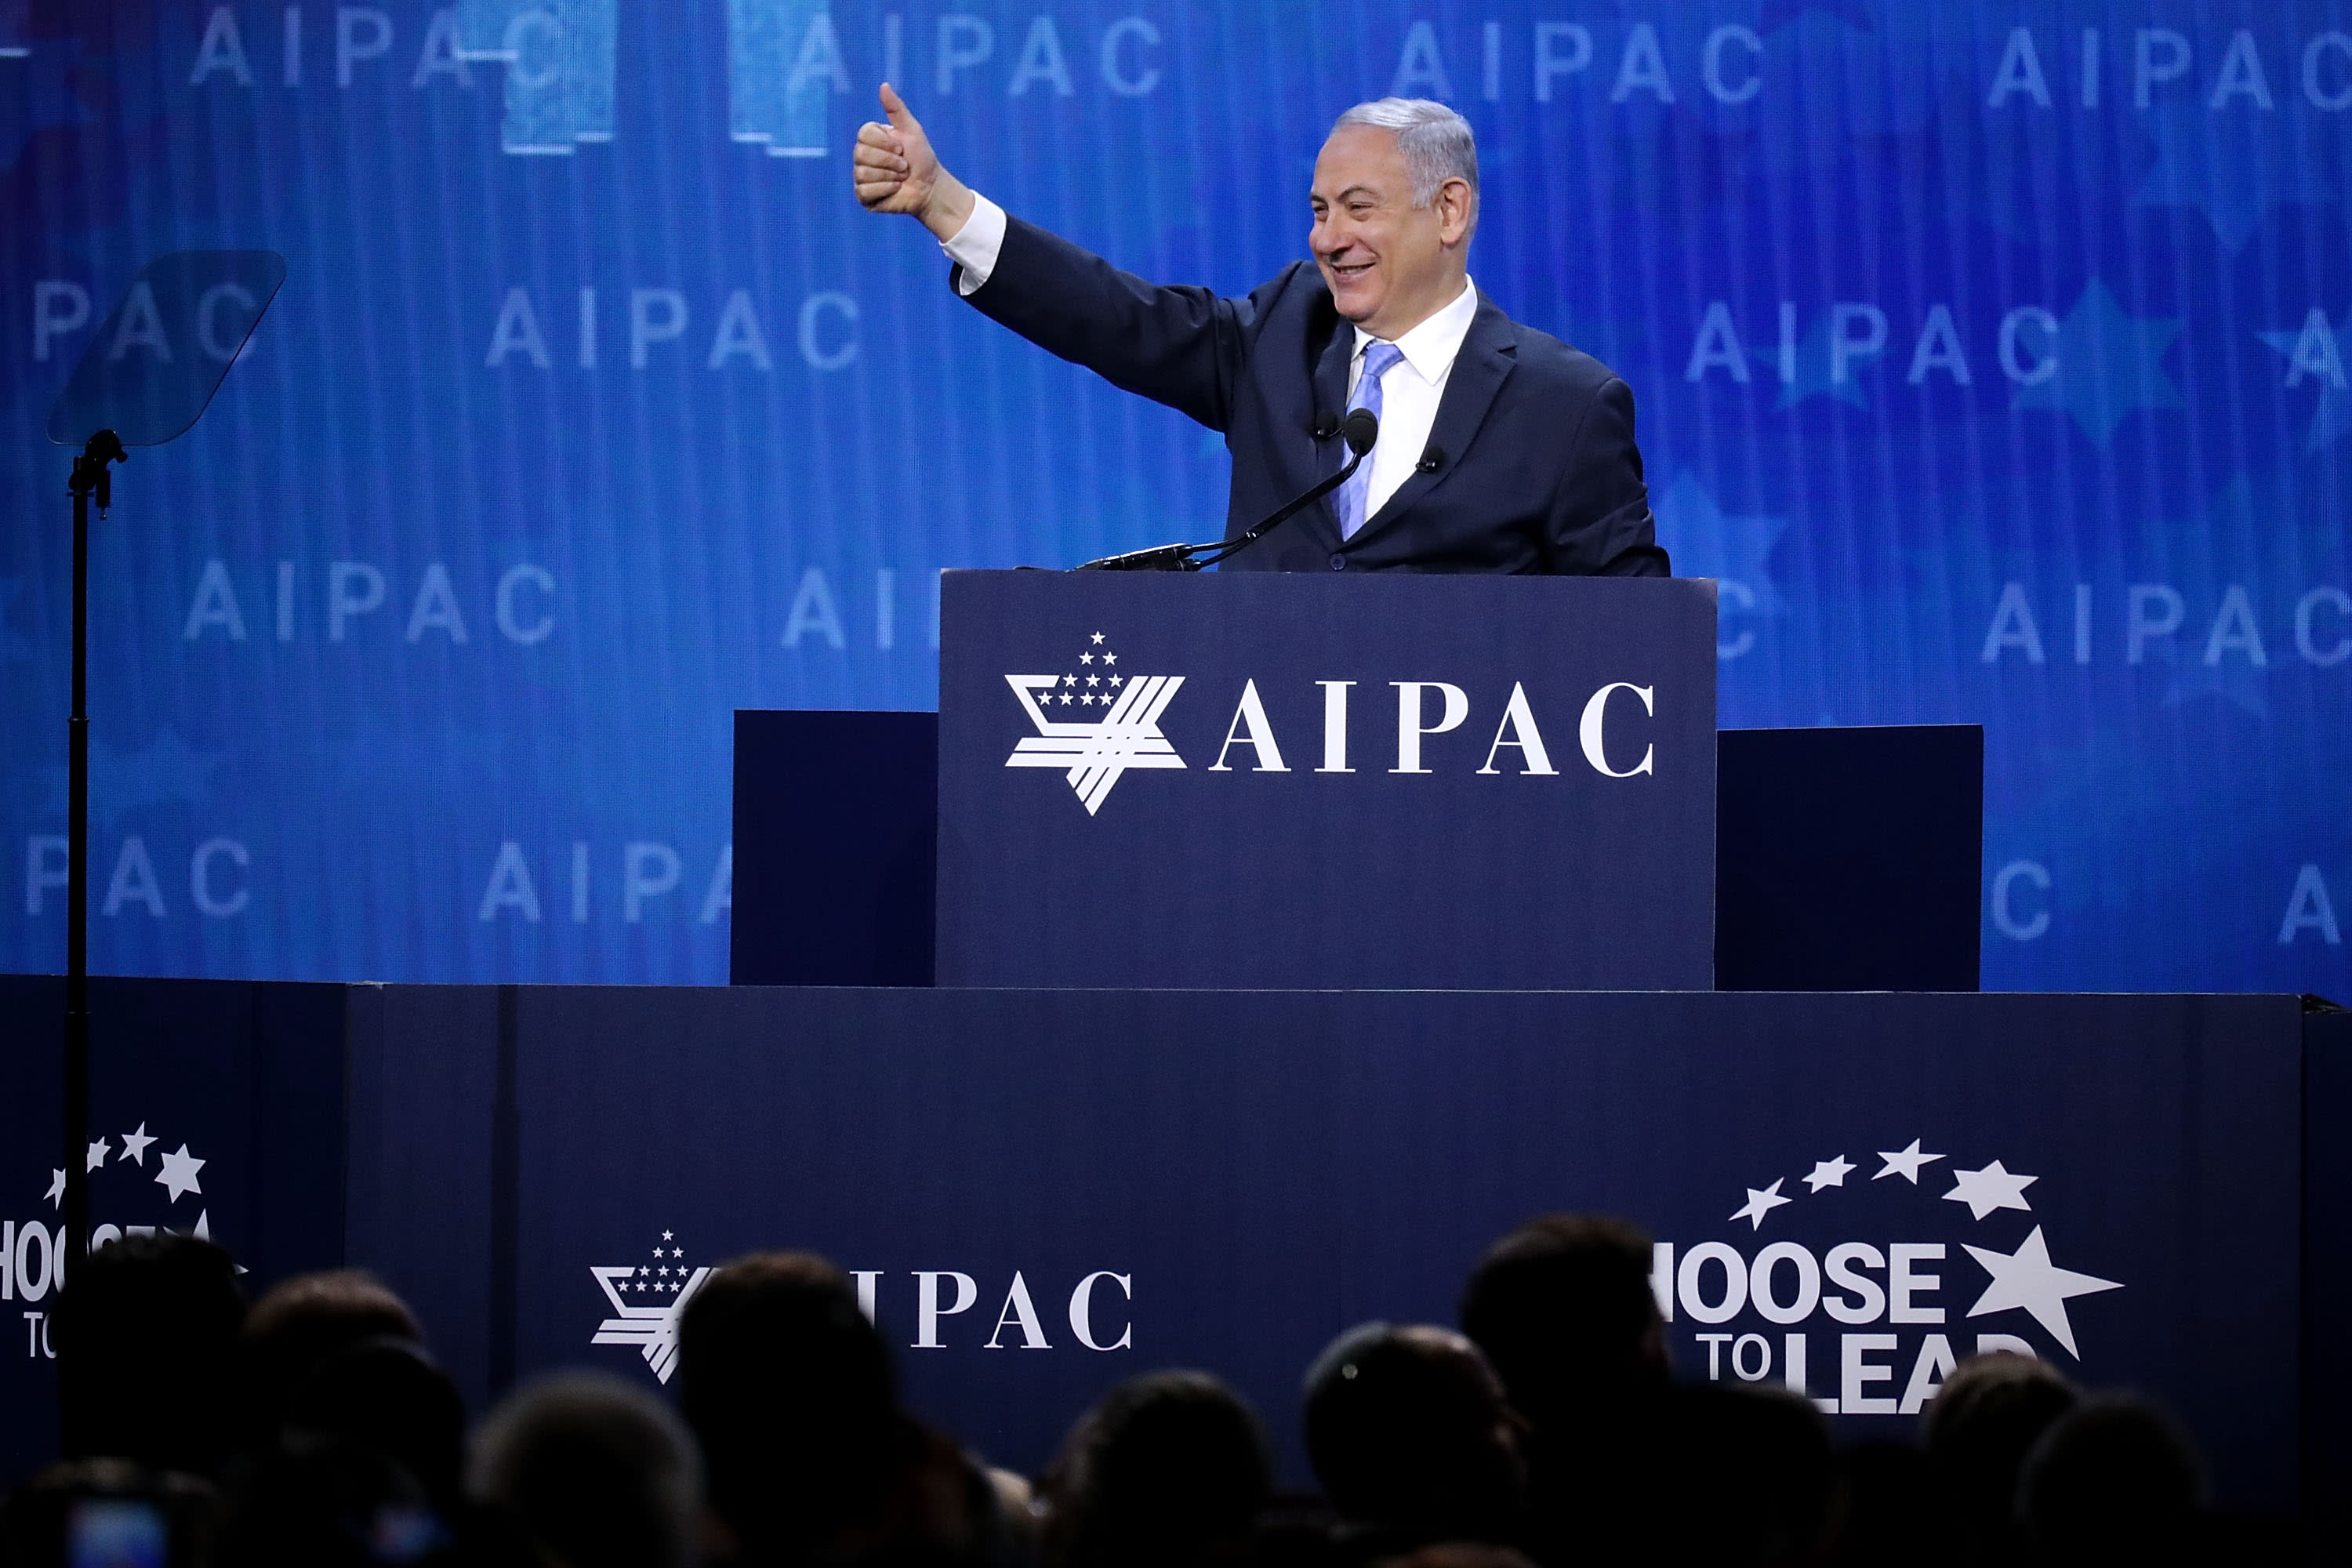 Israeli Prime Minister Benjamin Netanyahu addresses the AIPAC annual policy conference, March 6, 2018 in Washington, DC. (CHIP SOMODEVILLA / GETTY IMAGES NORTH AMERICA / AFP)